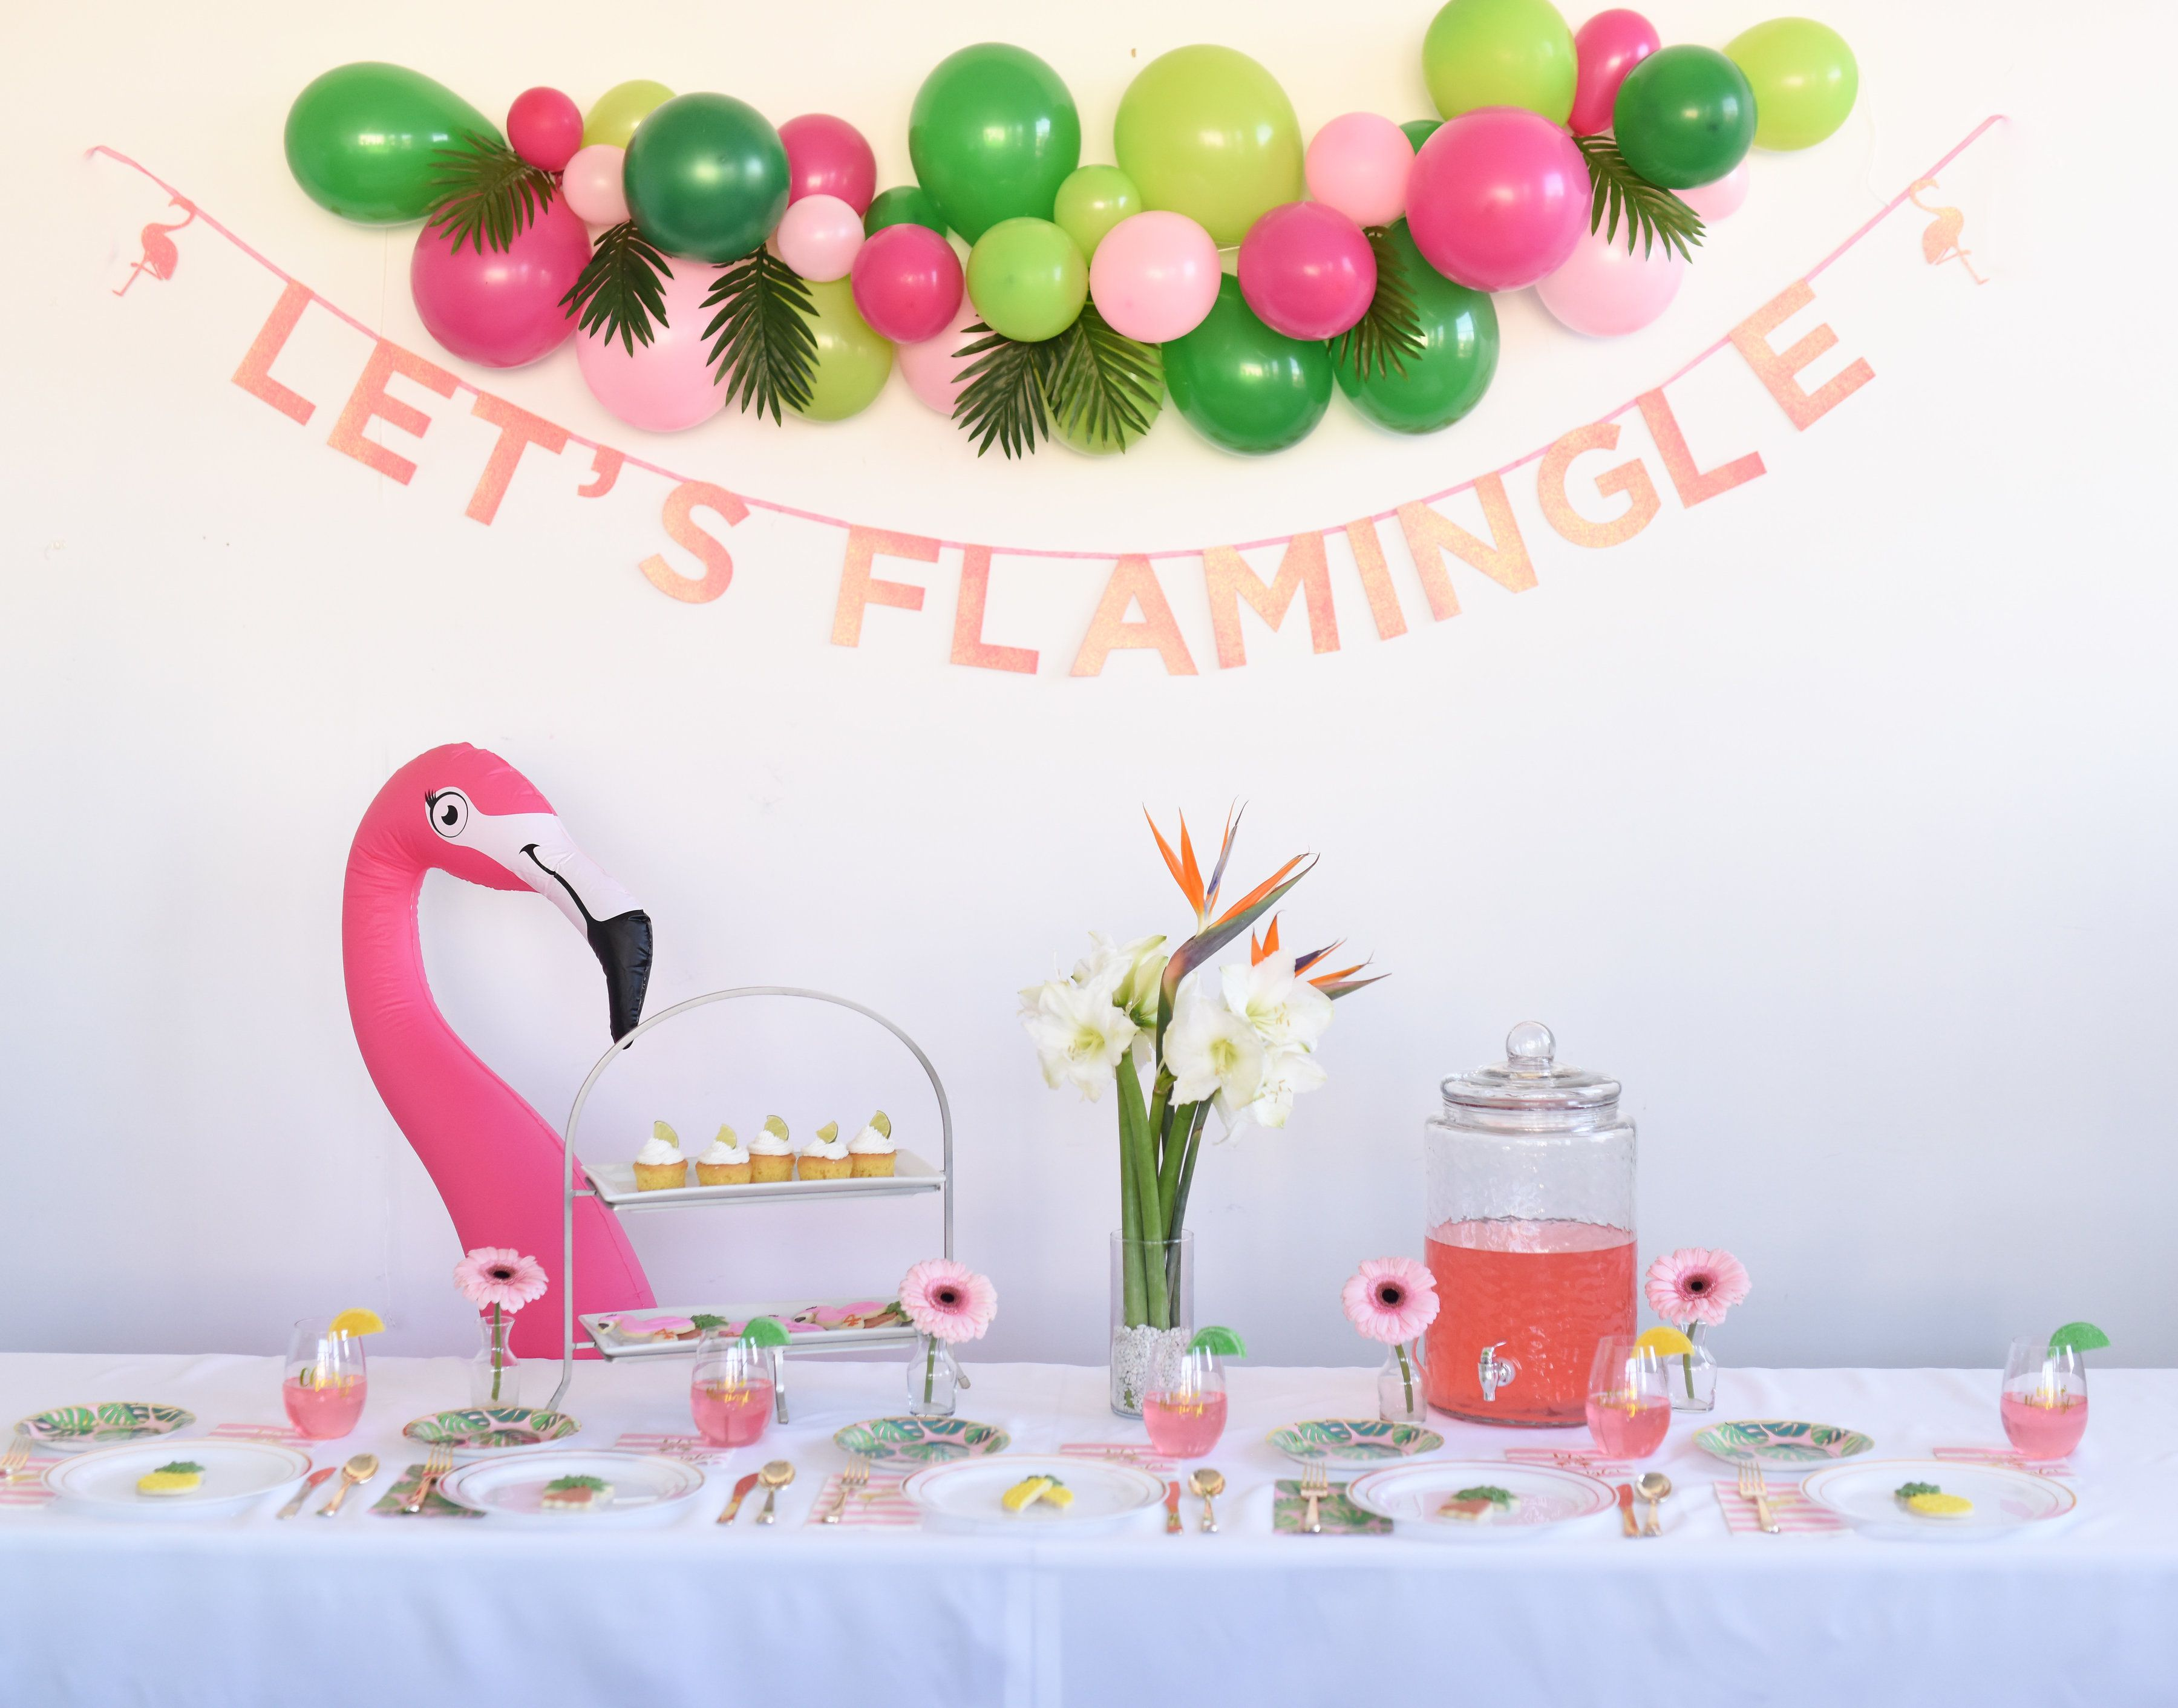 Lets Flamingle Flamingo Party Decorations Celebrated Flamingo Party Decor Flamingle Party Flamingo Themed Party